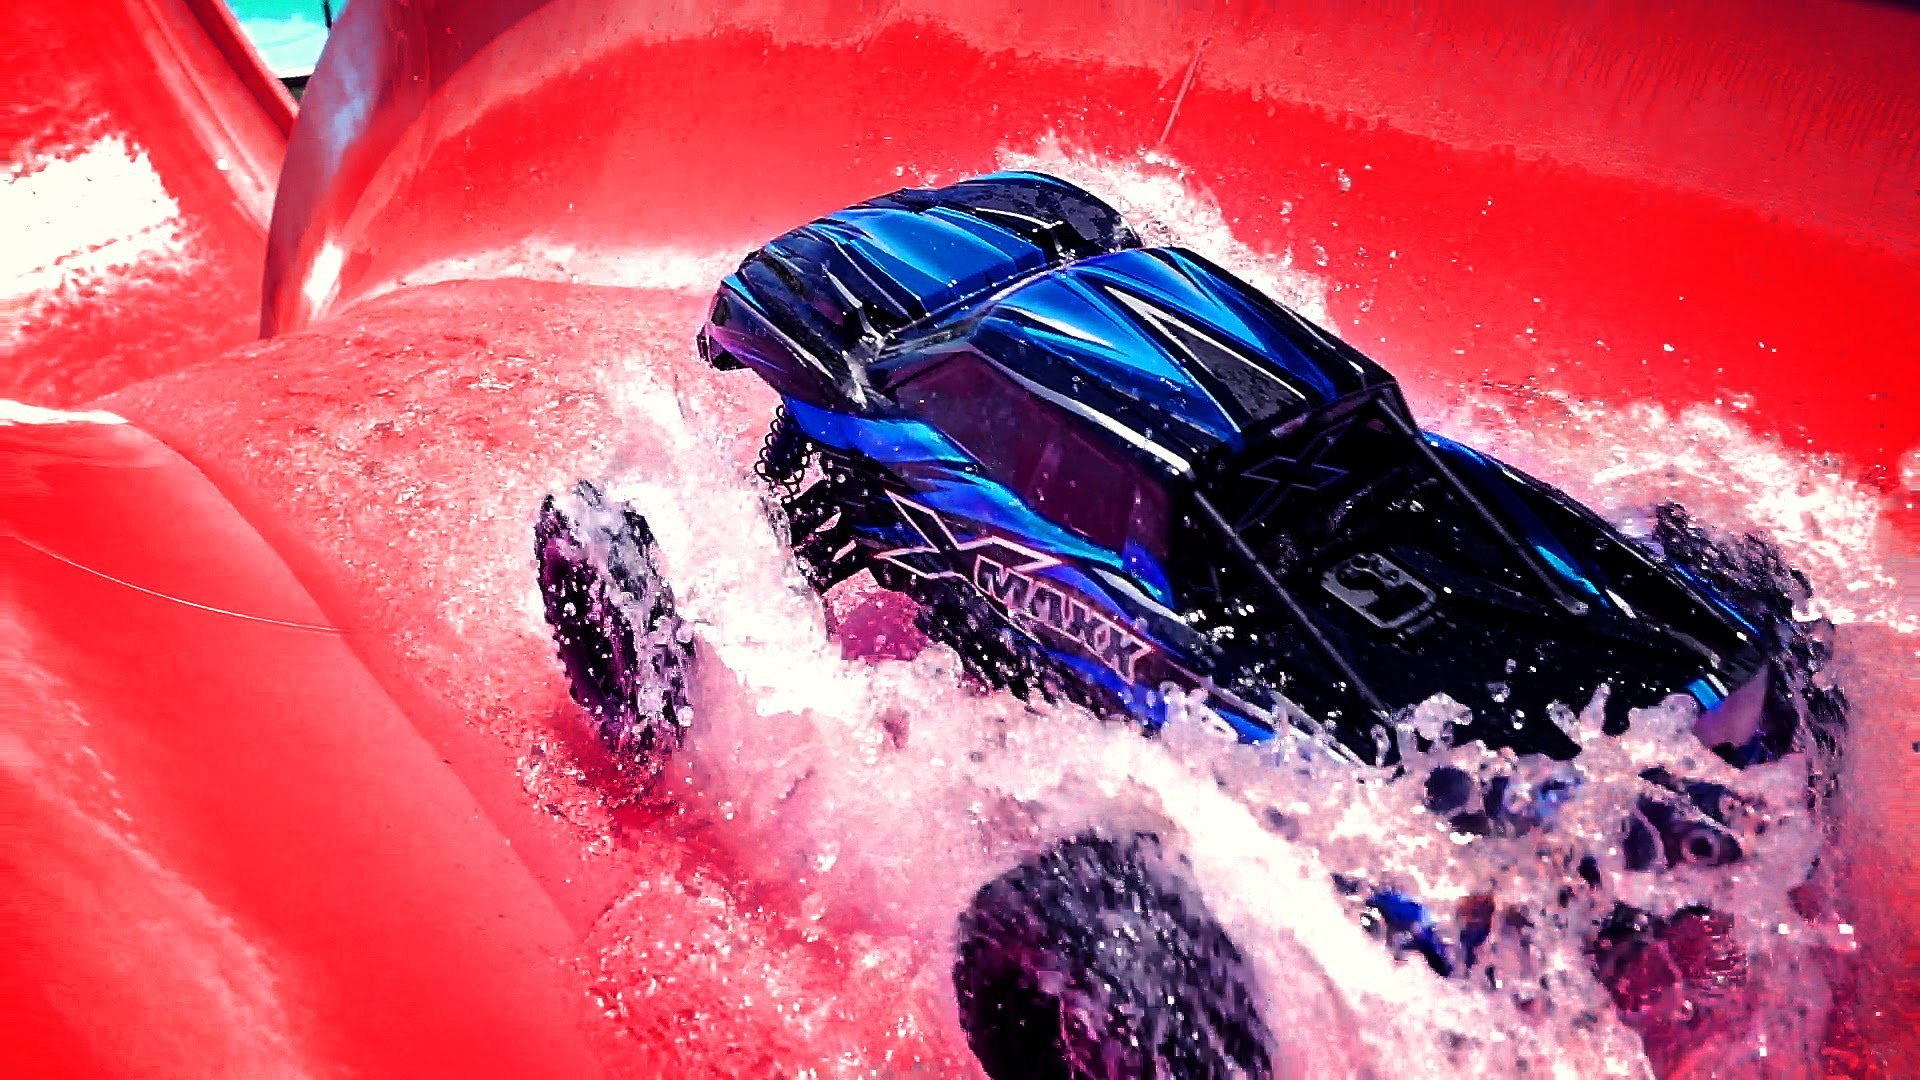 Don't Miss The Wild Action As Traxxas RC's Invade The Hawaiian Falls Water Park! EPIC!